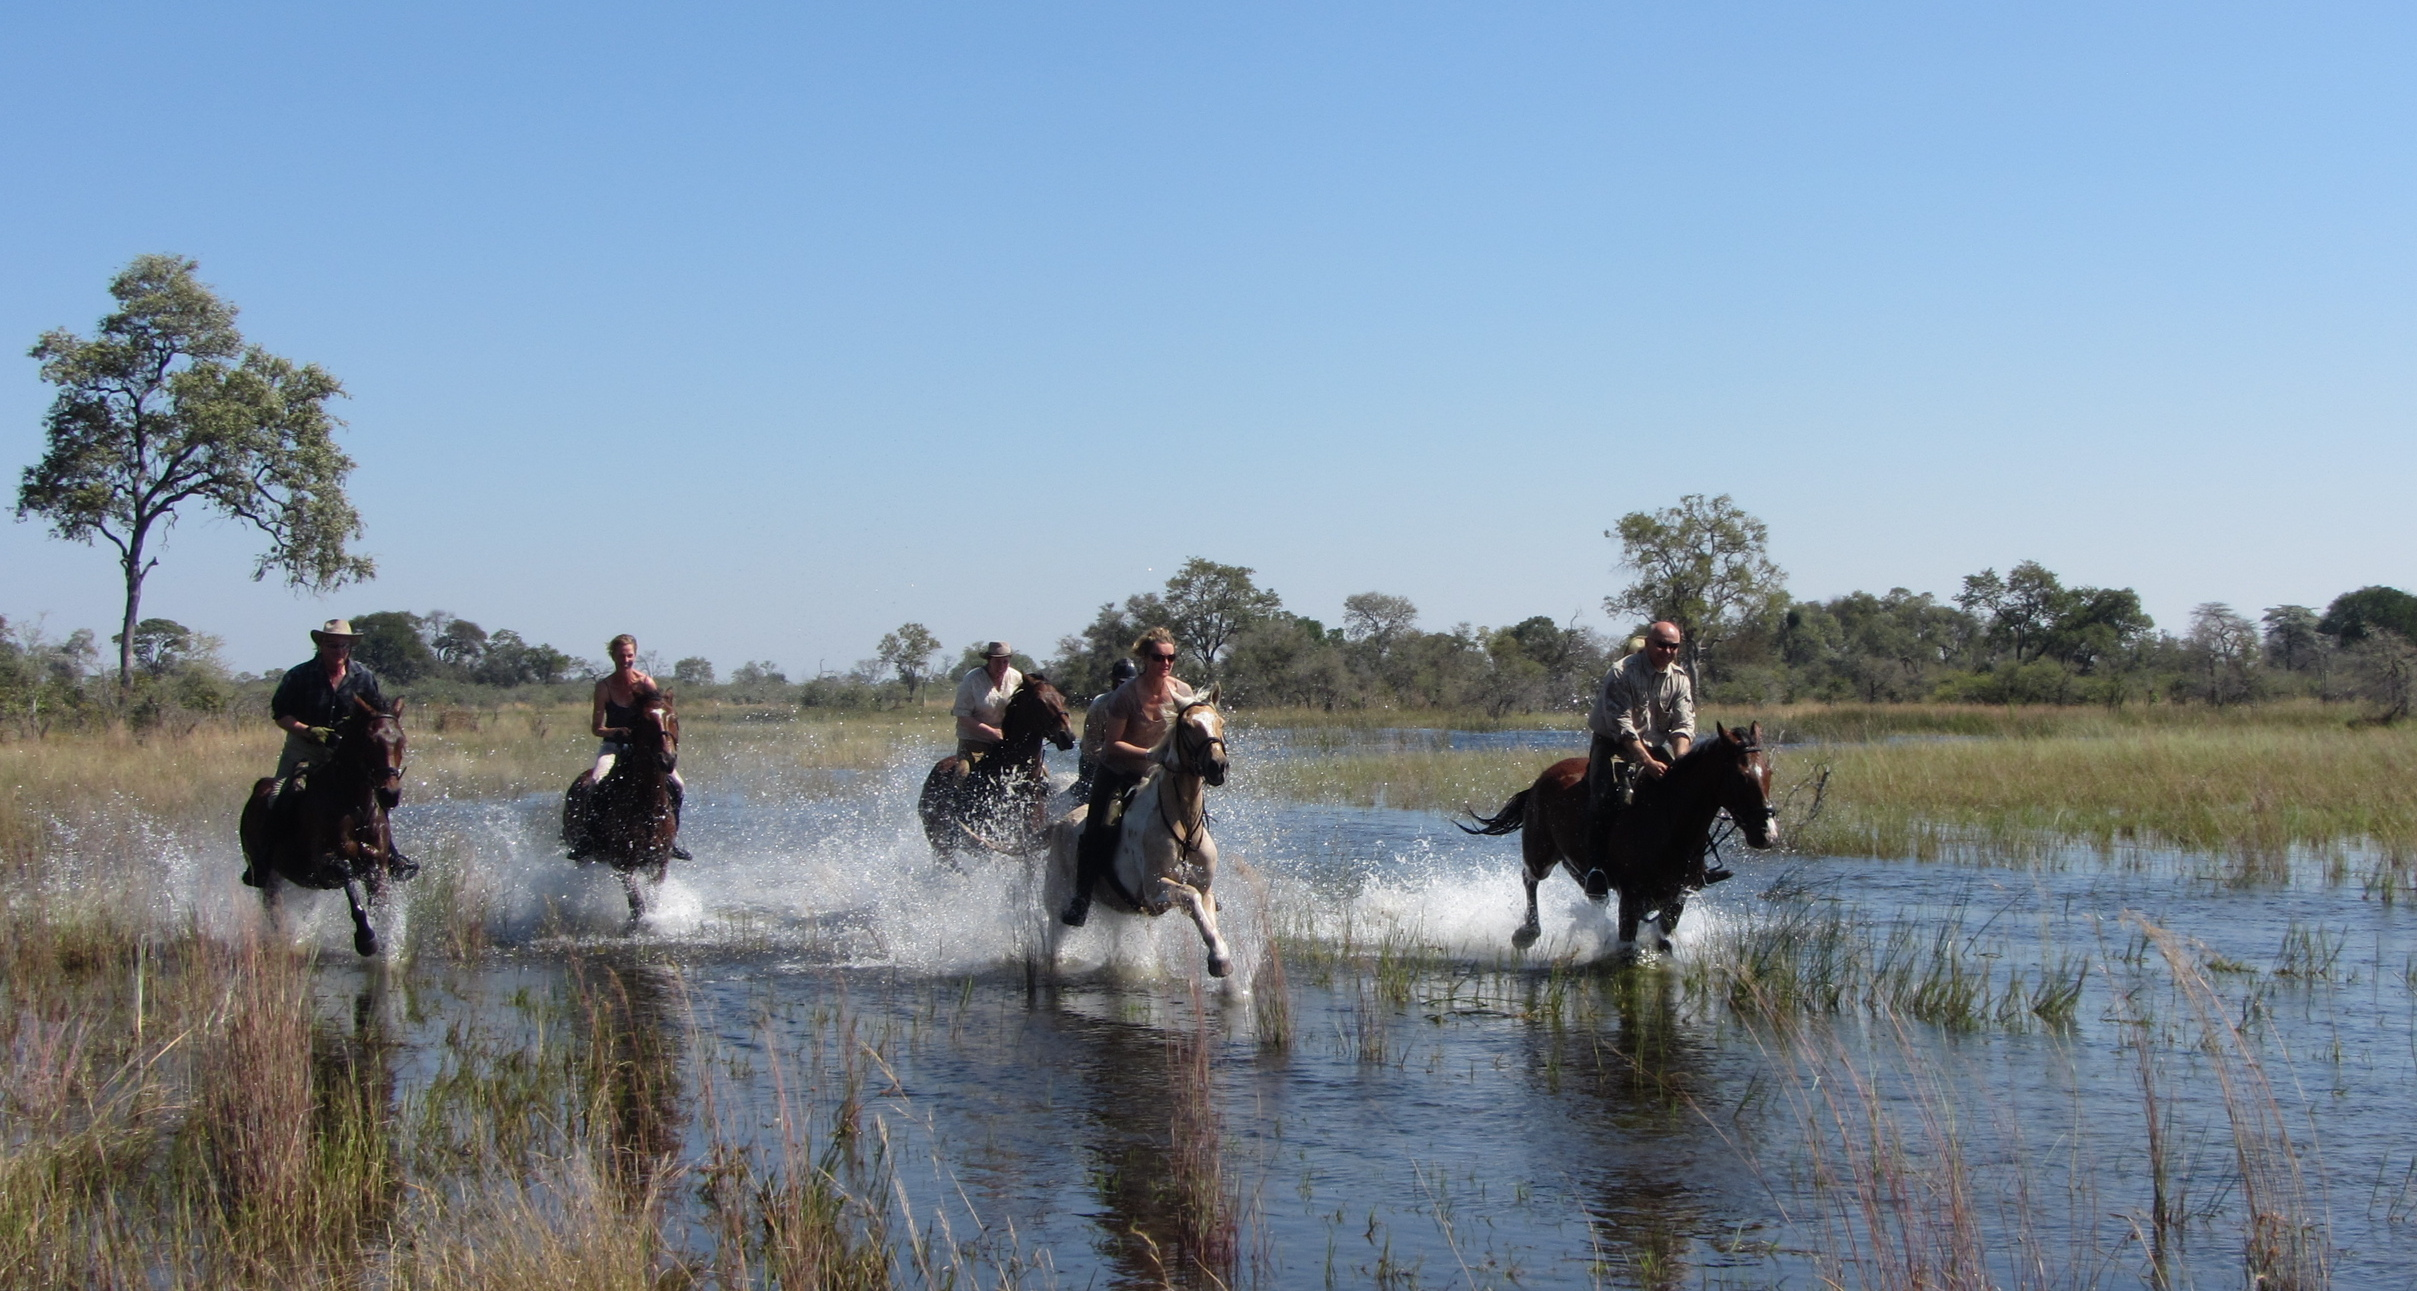 Liquid Giraffe, Botswana Horse Riding Safari, Botswana Safari, Wildlife Safari, Adventure Travel